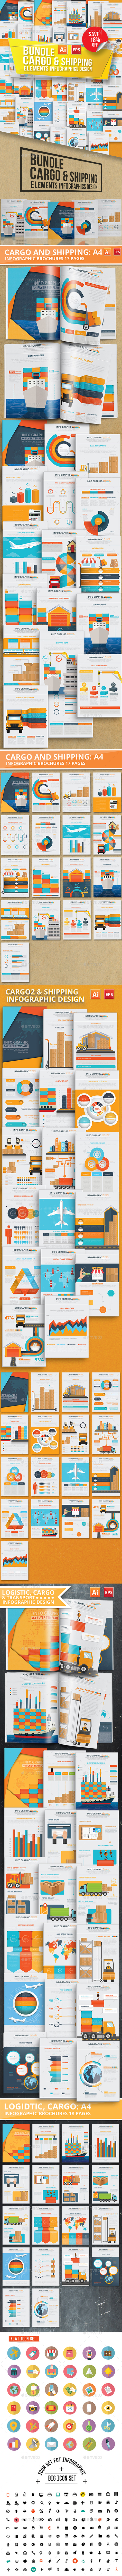 Bundle Cargo, Shipping & Logistic Infographics Design - Infographics